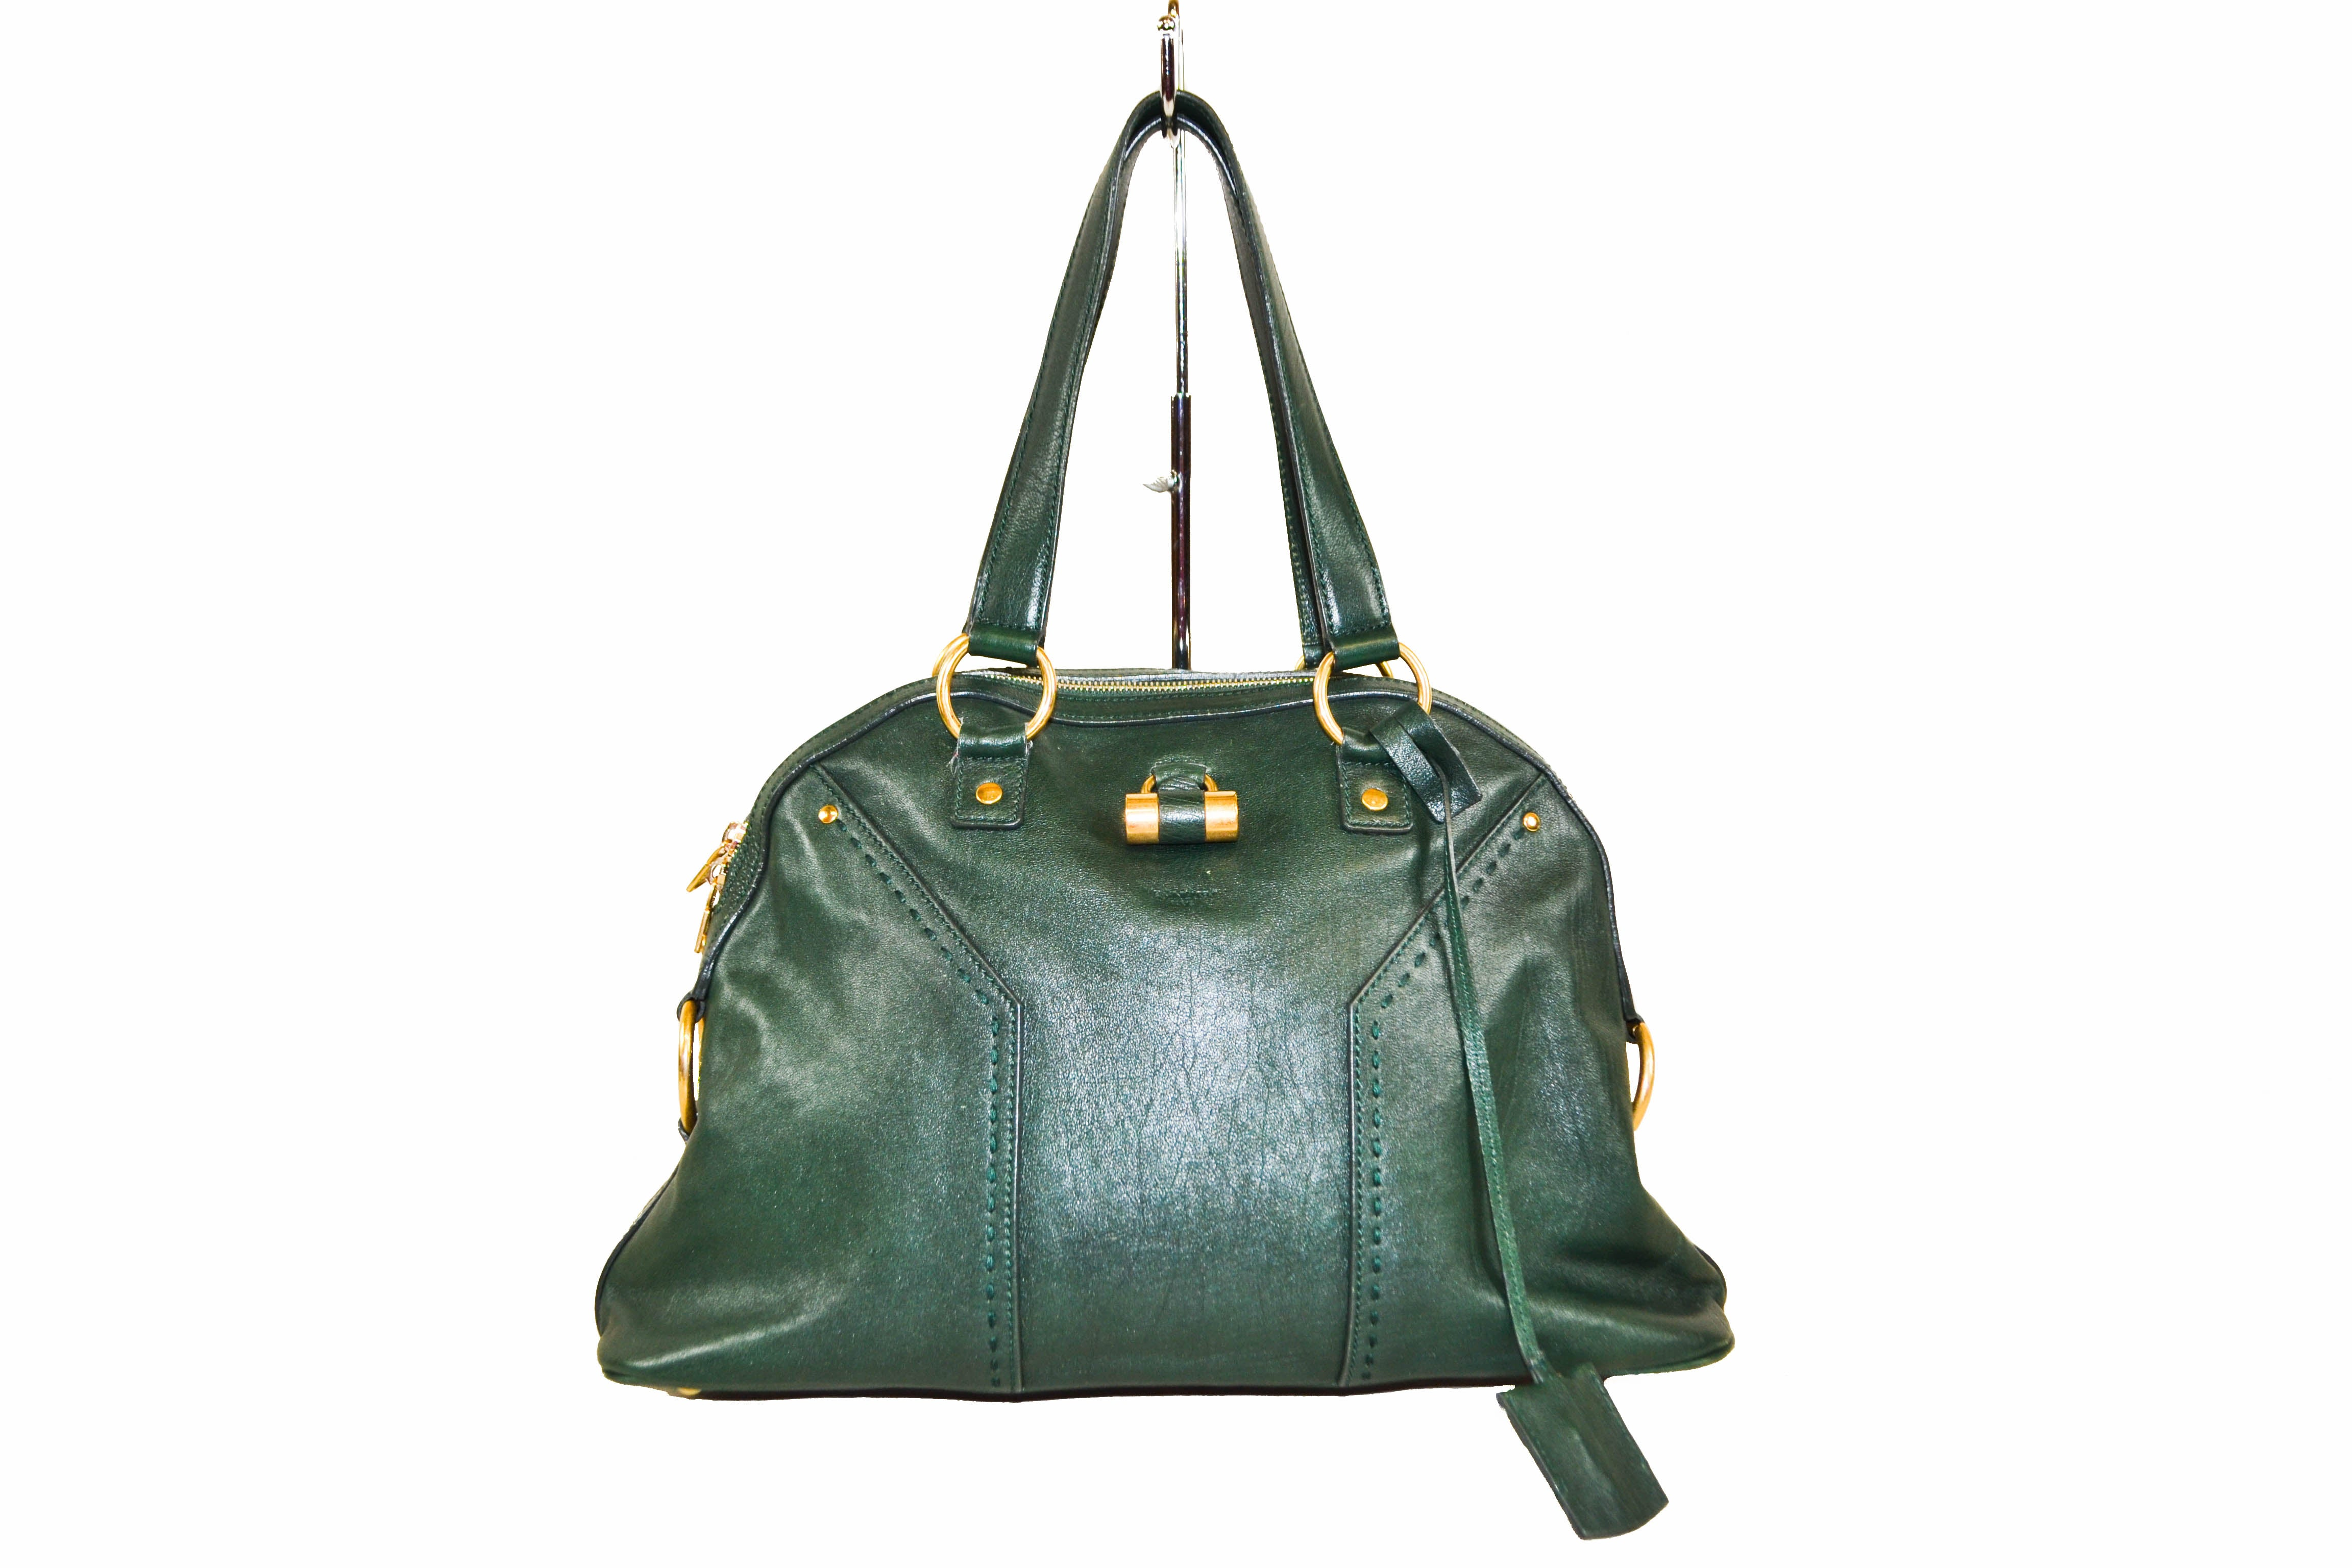 Authentic YSL Yves Saint Laurent Green Leather Muse Shoulder Bag